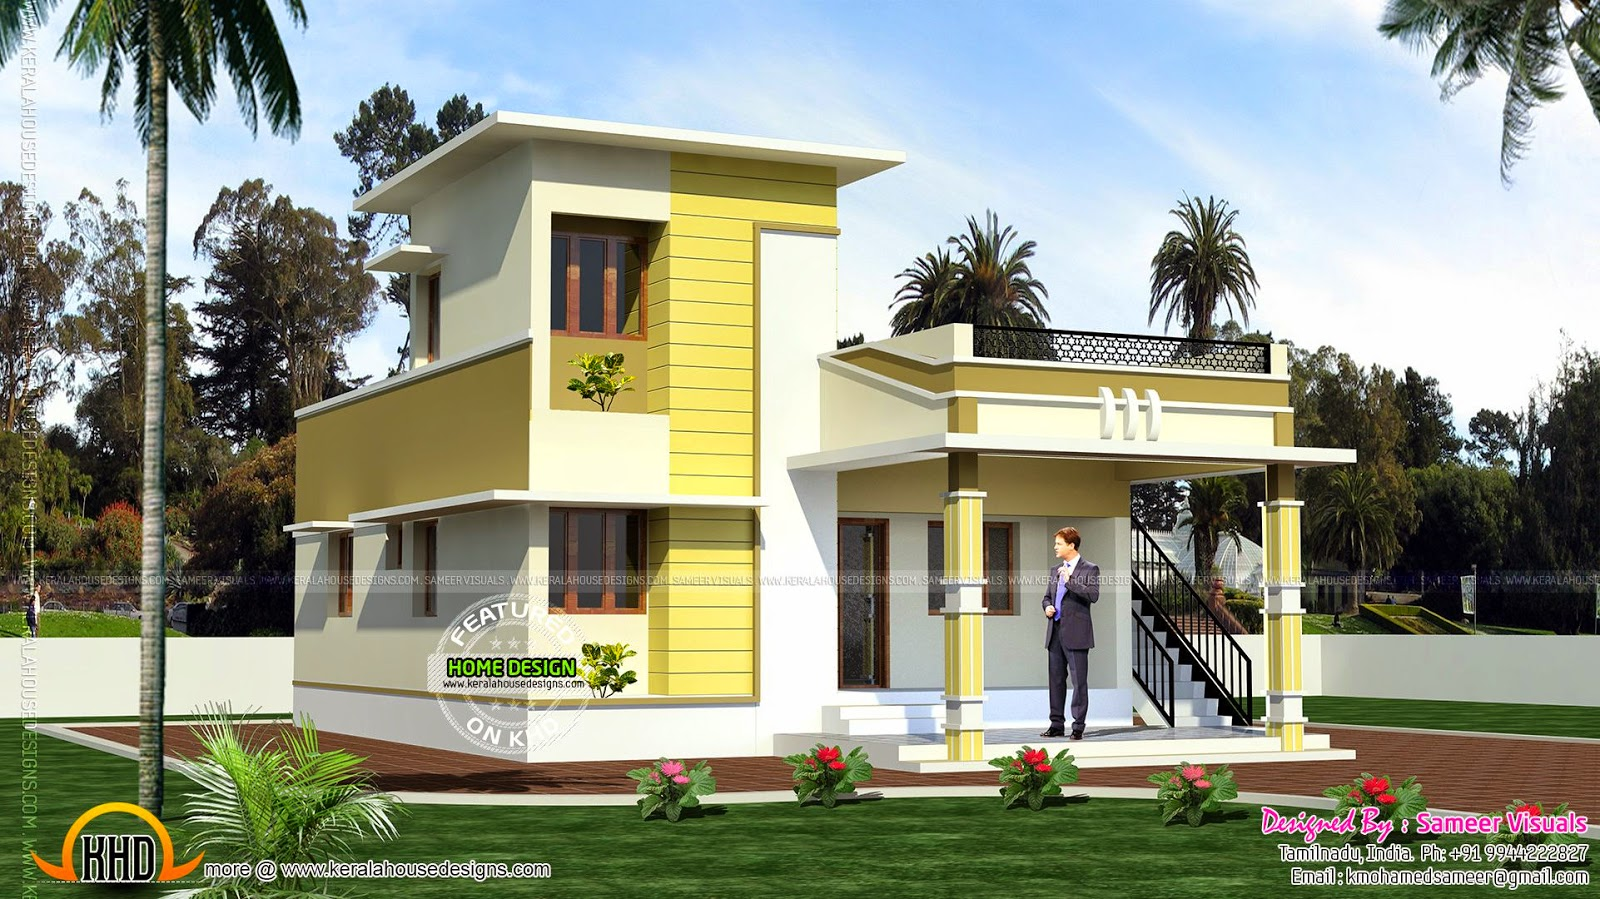 Single storied tamilnadu home kerala home design and for Tamilnadu house designs photos